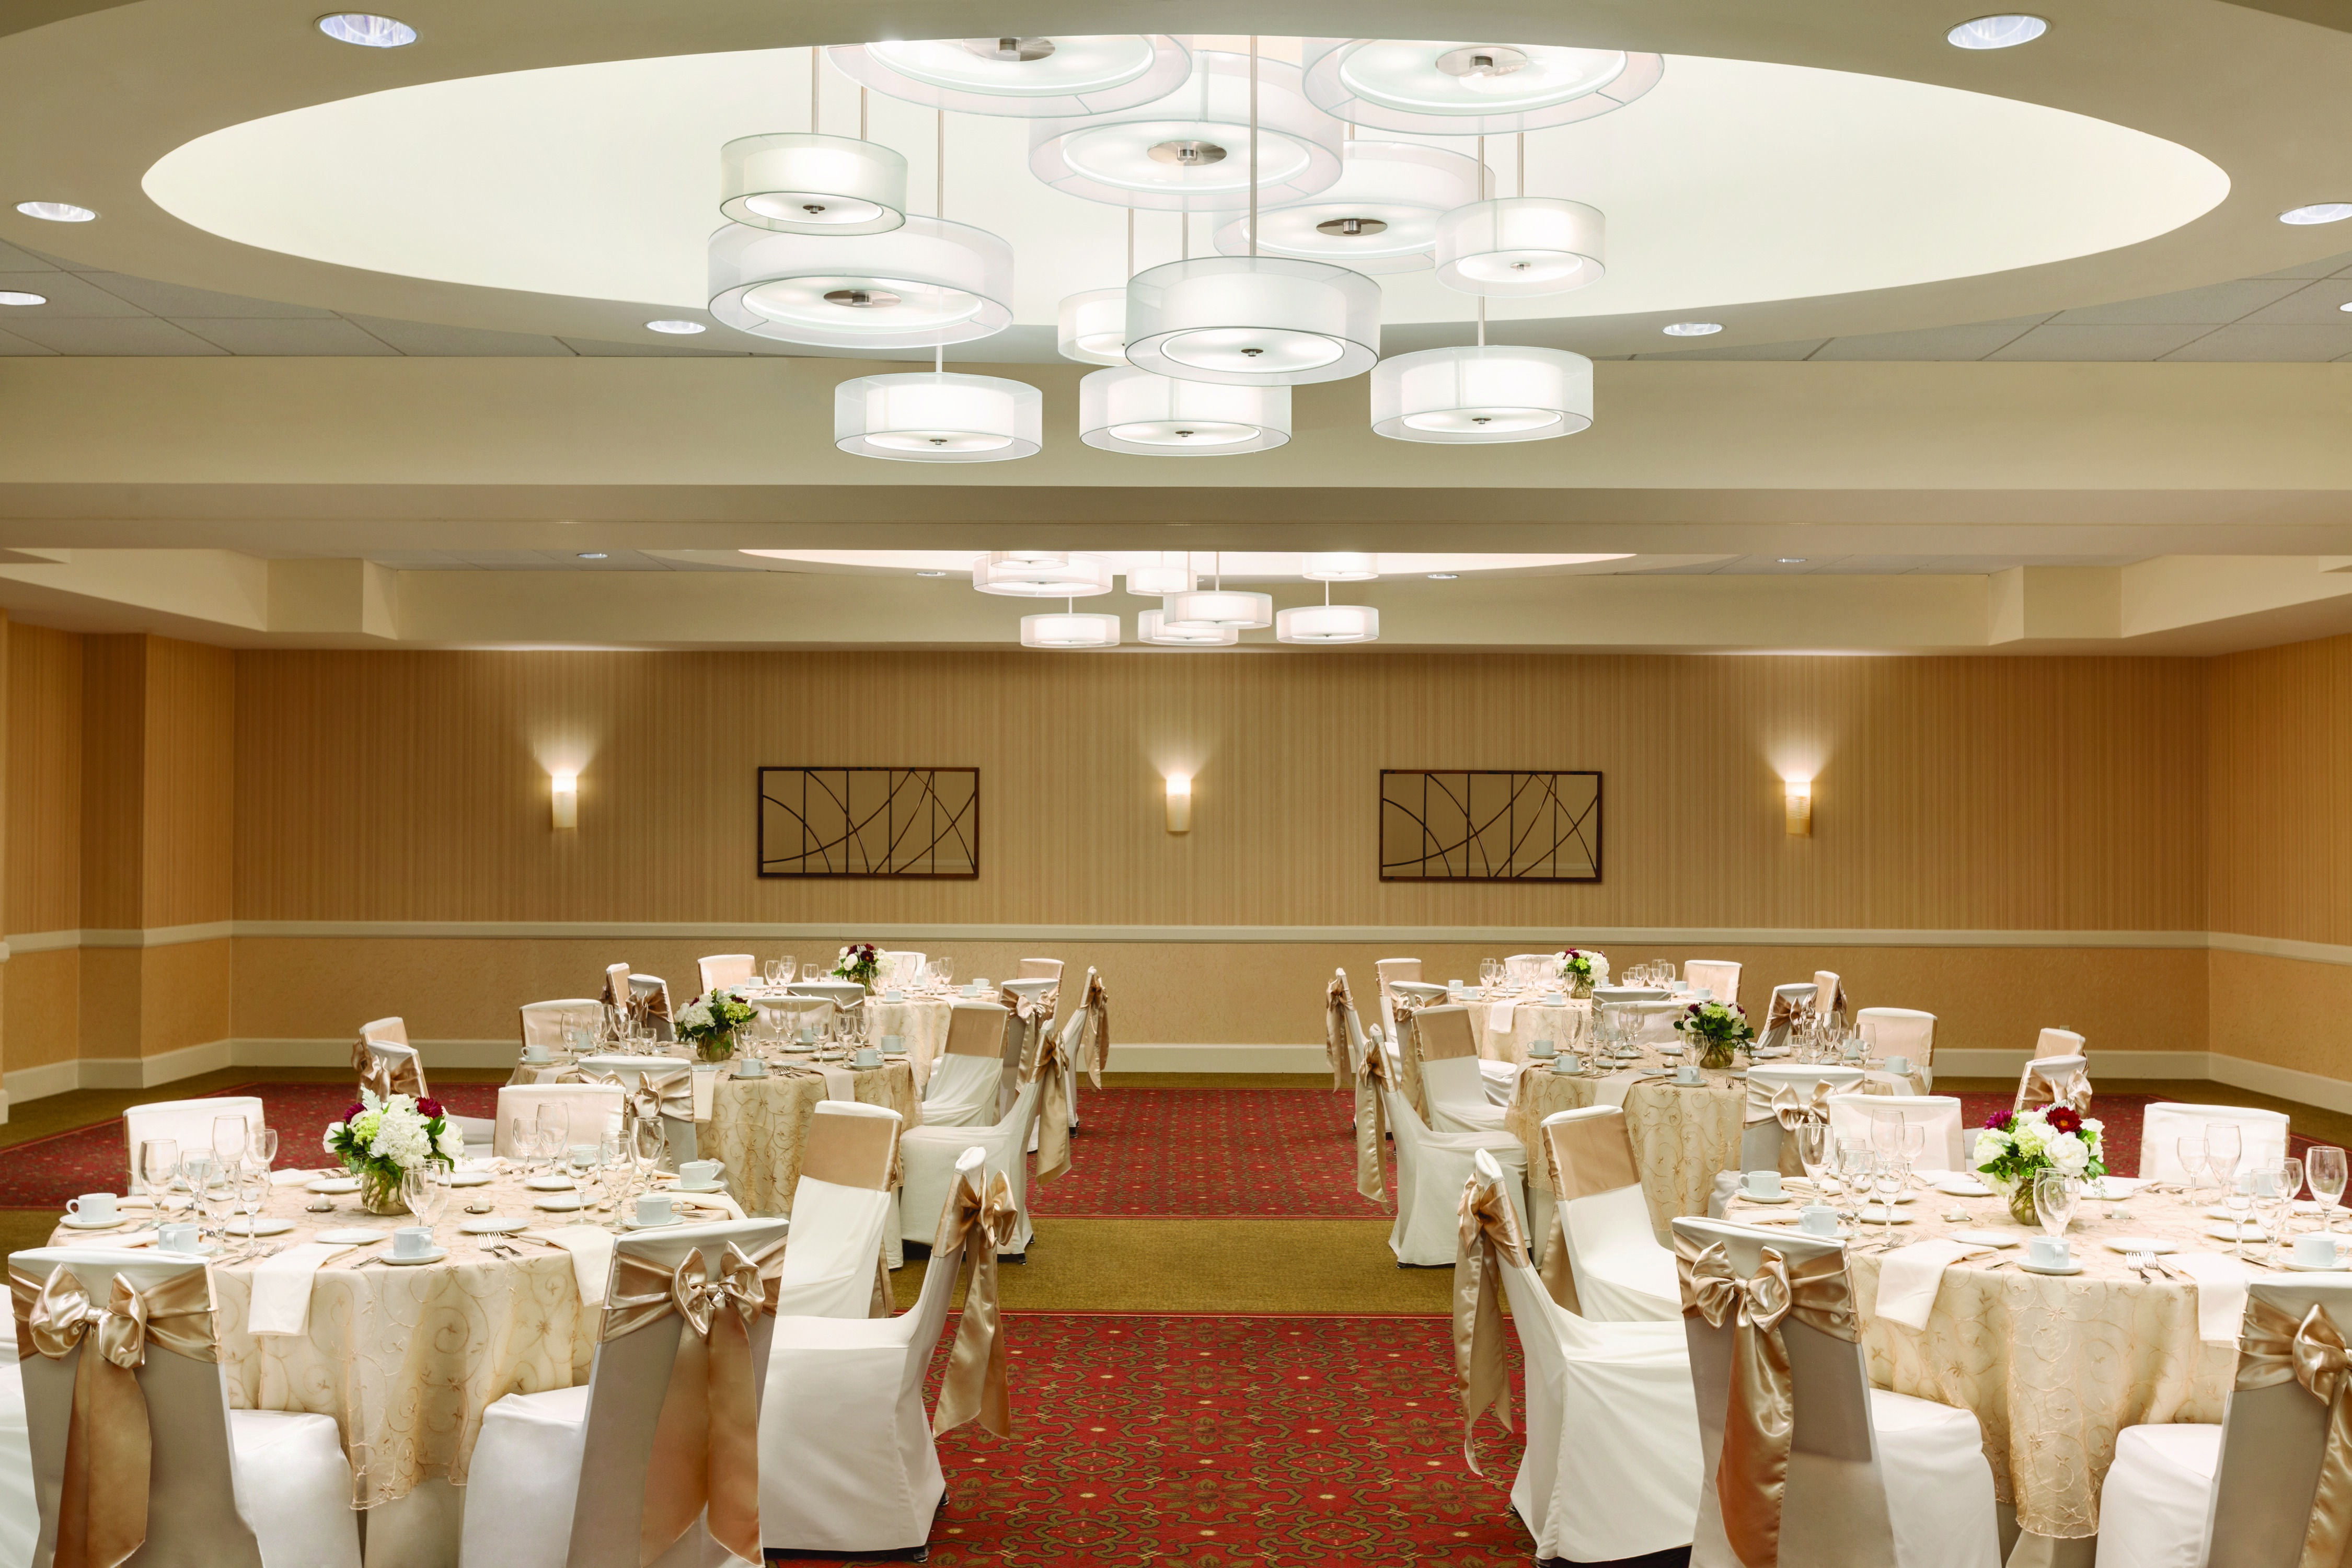 Drake Ballroom At The Embassy Suites Boston Waltham Perfect Venue For Your Wedding